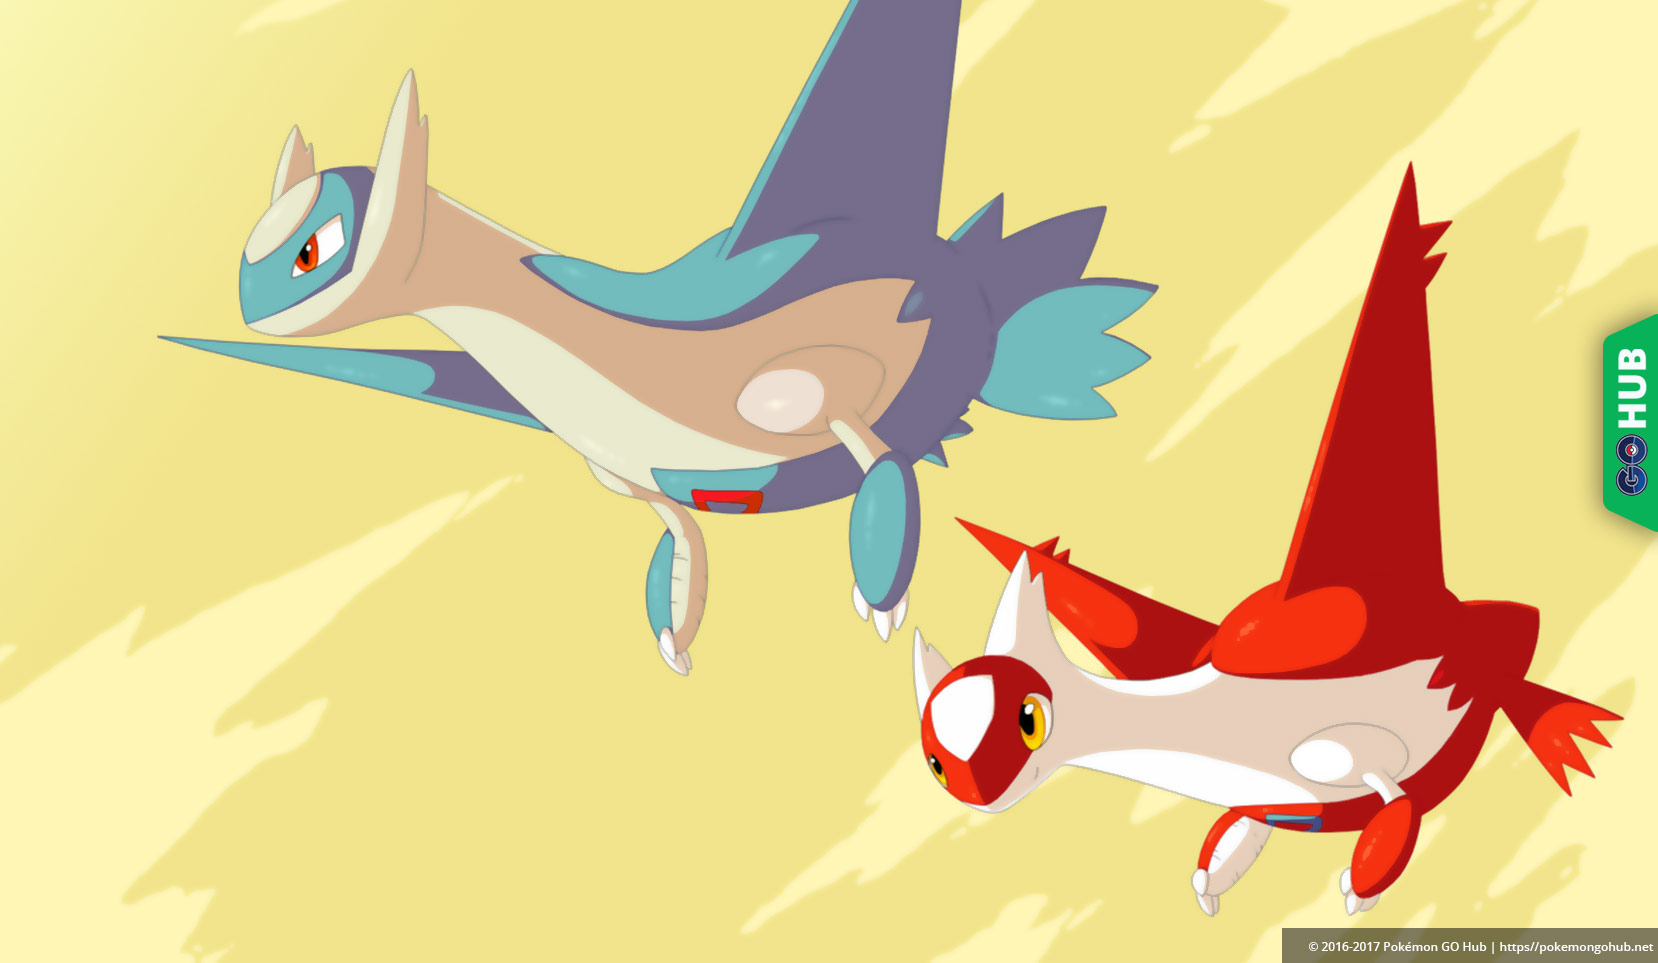 Shiny Latios and Latias models found in Pokemon GOs network 1658x963